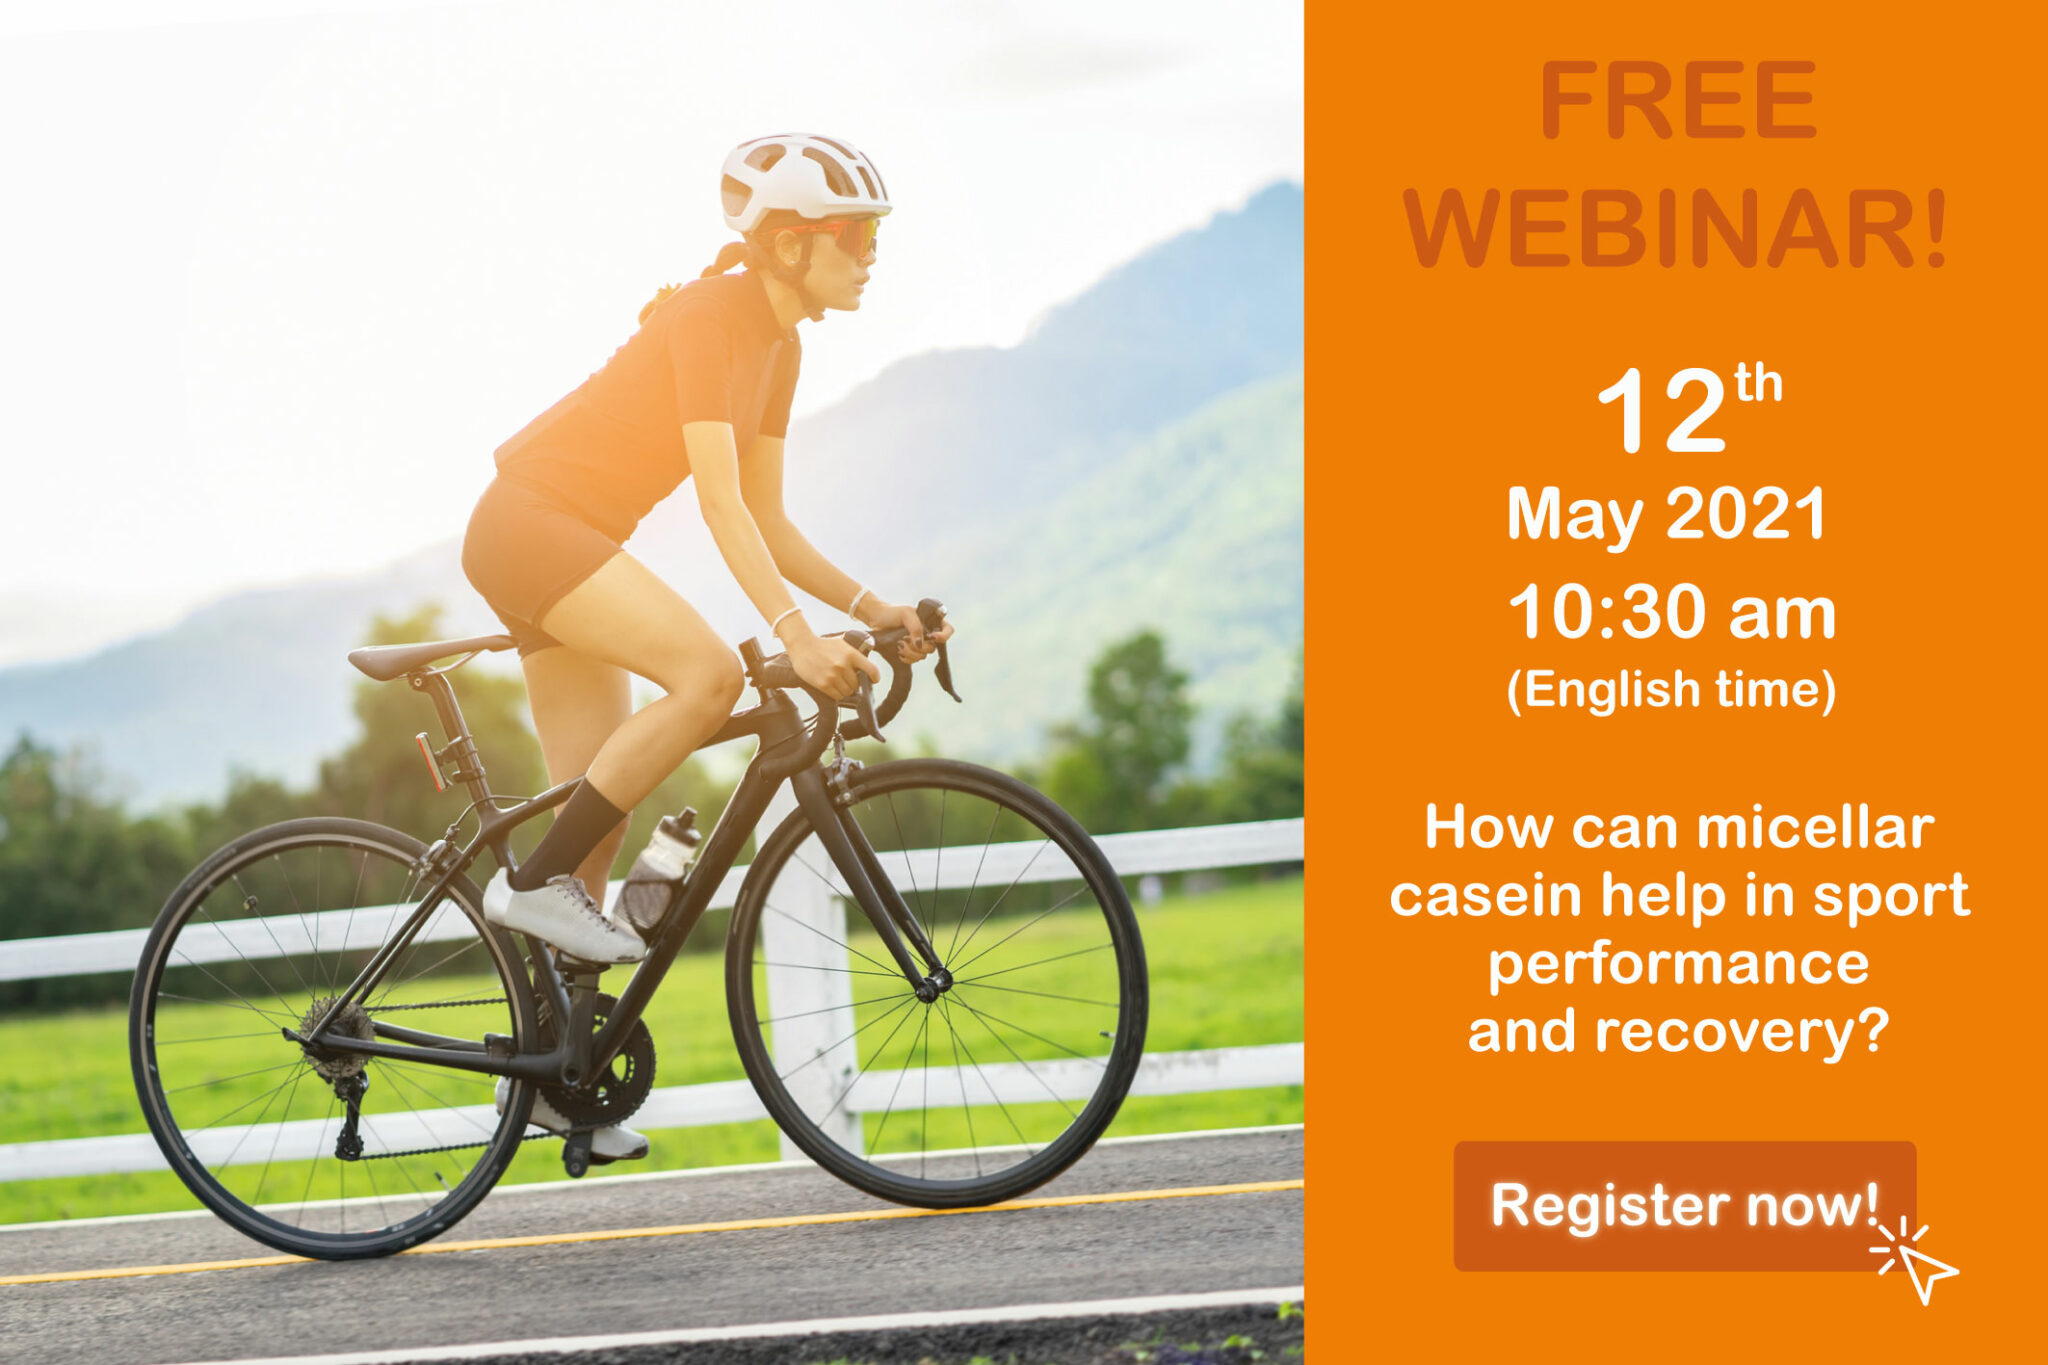 Webcast: how can micellar casein help in sport performance and recovery?